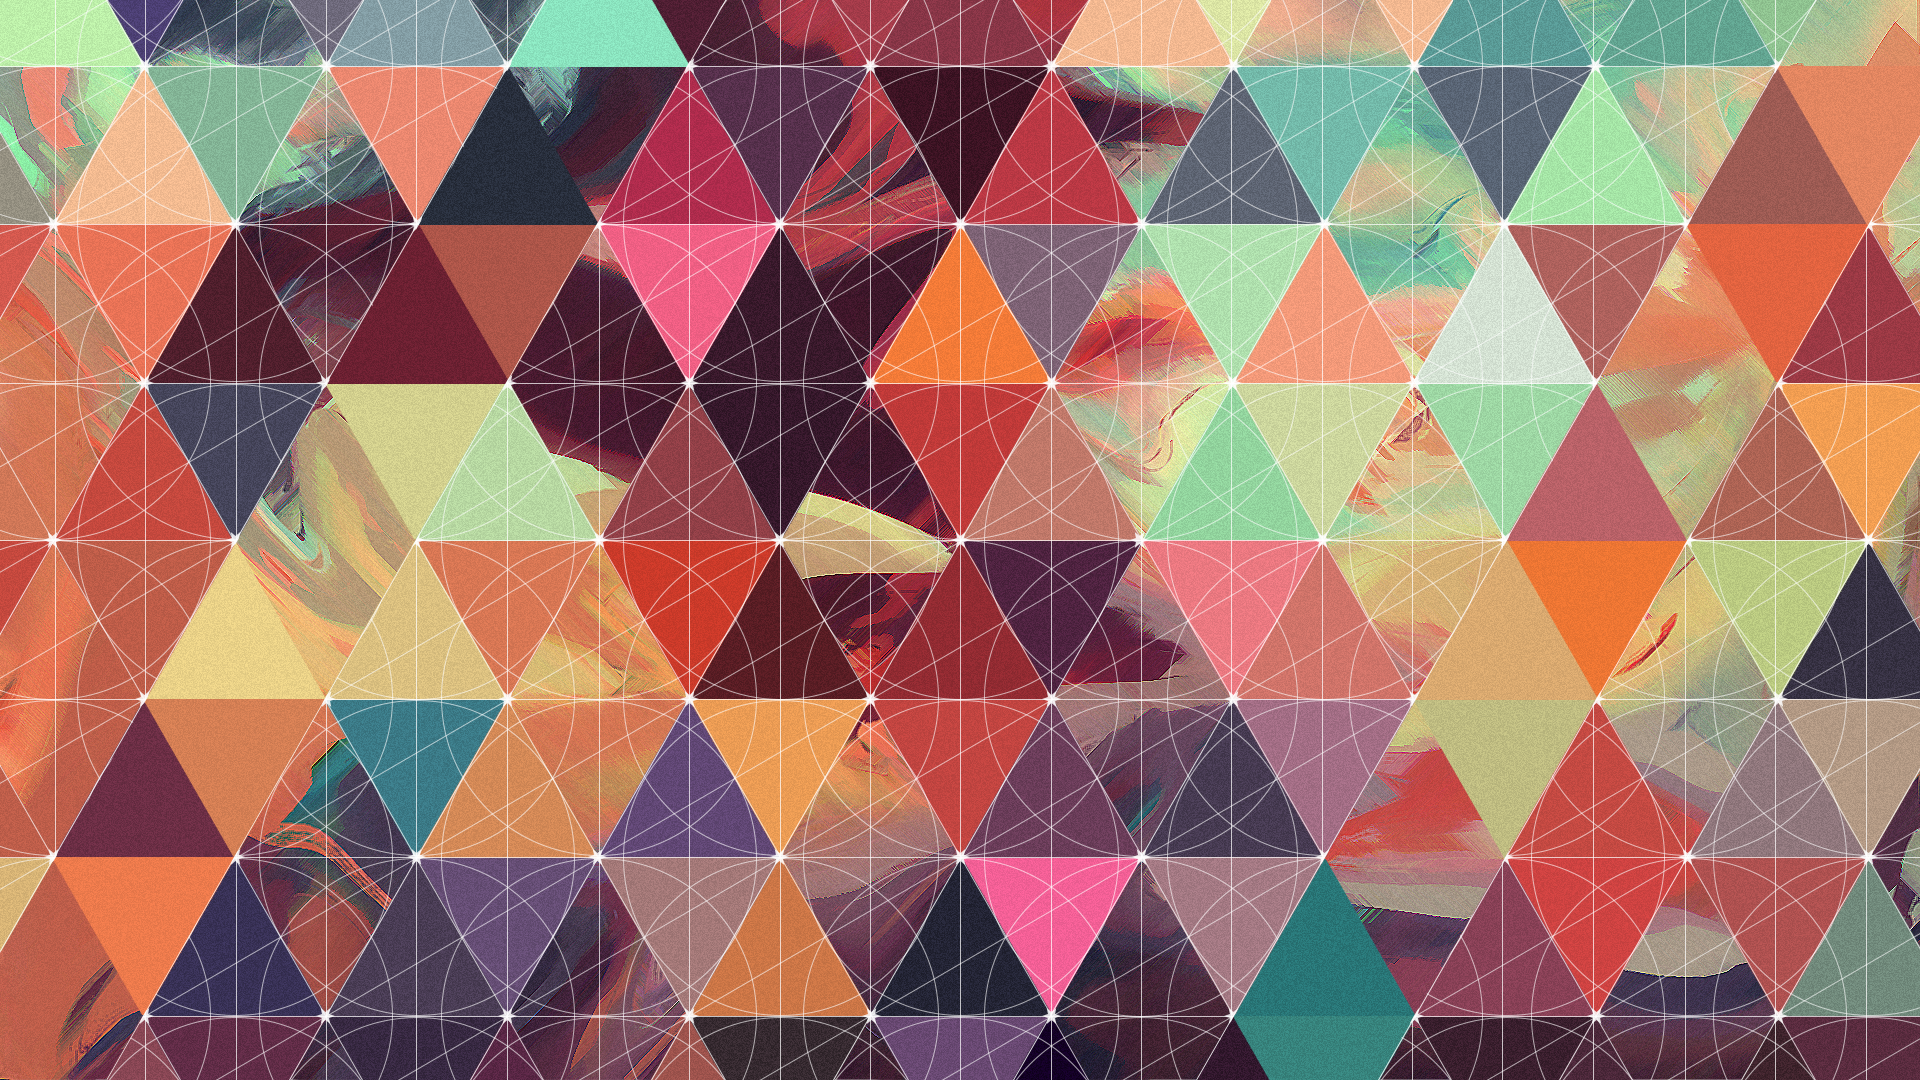 By Robyn Moskowitz V.92: Amazing Geometric Pictures & Backgrounds